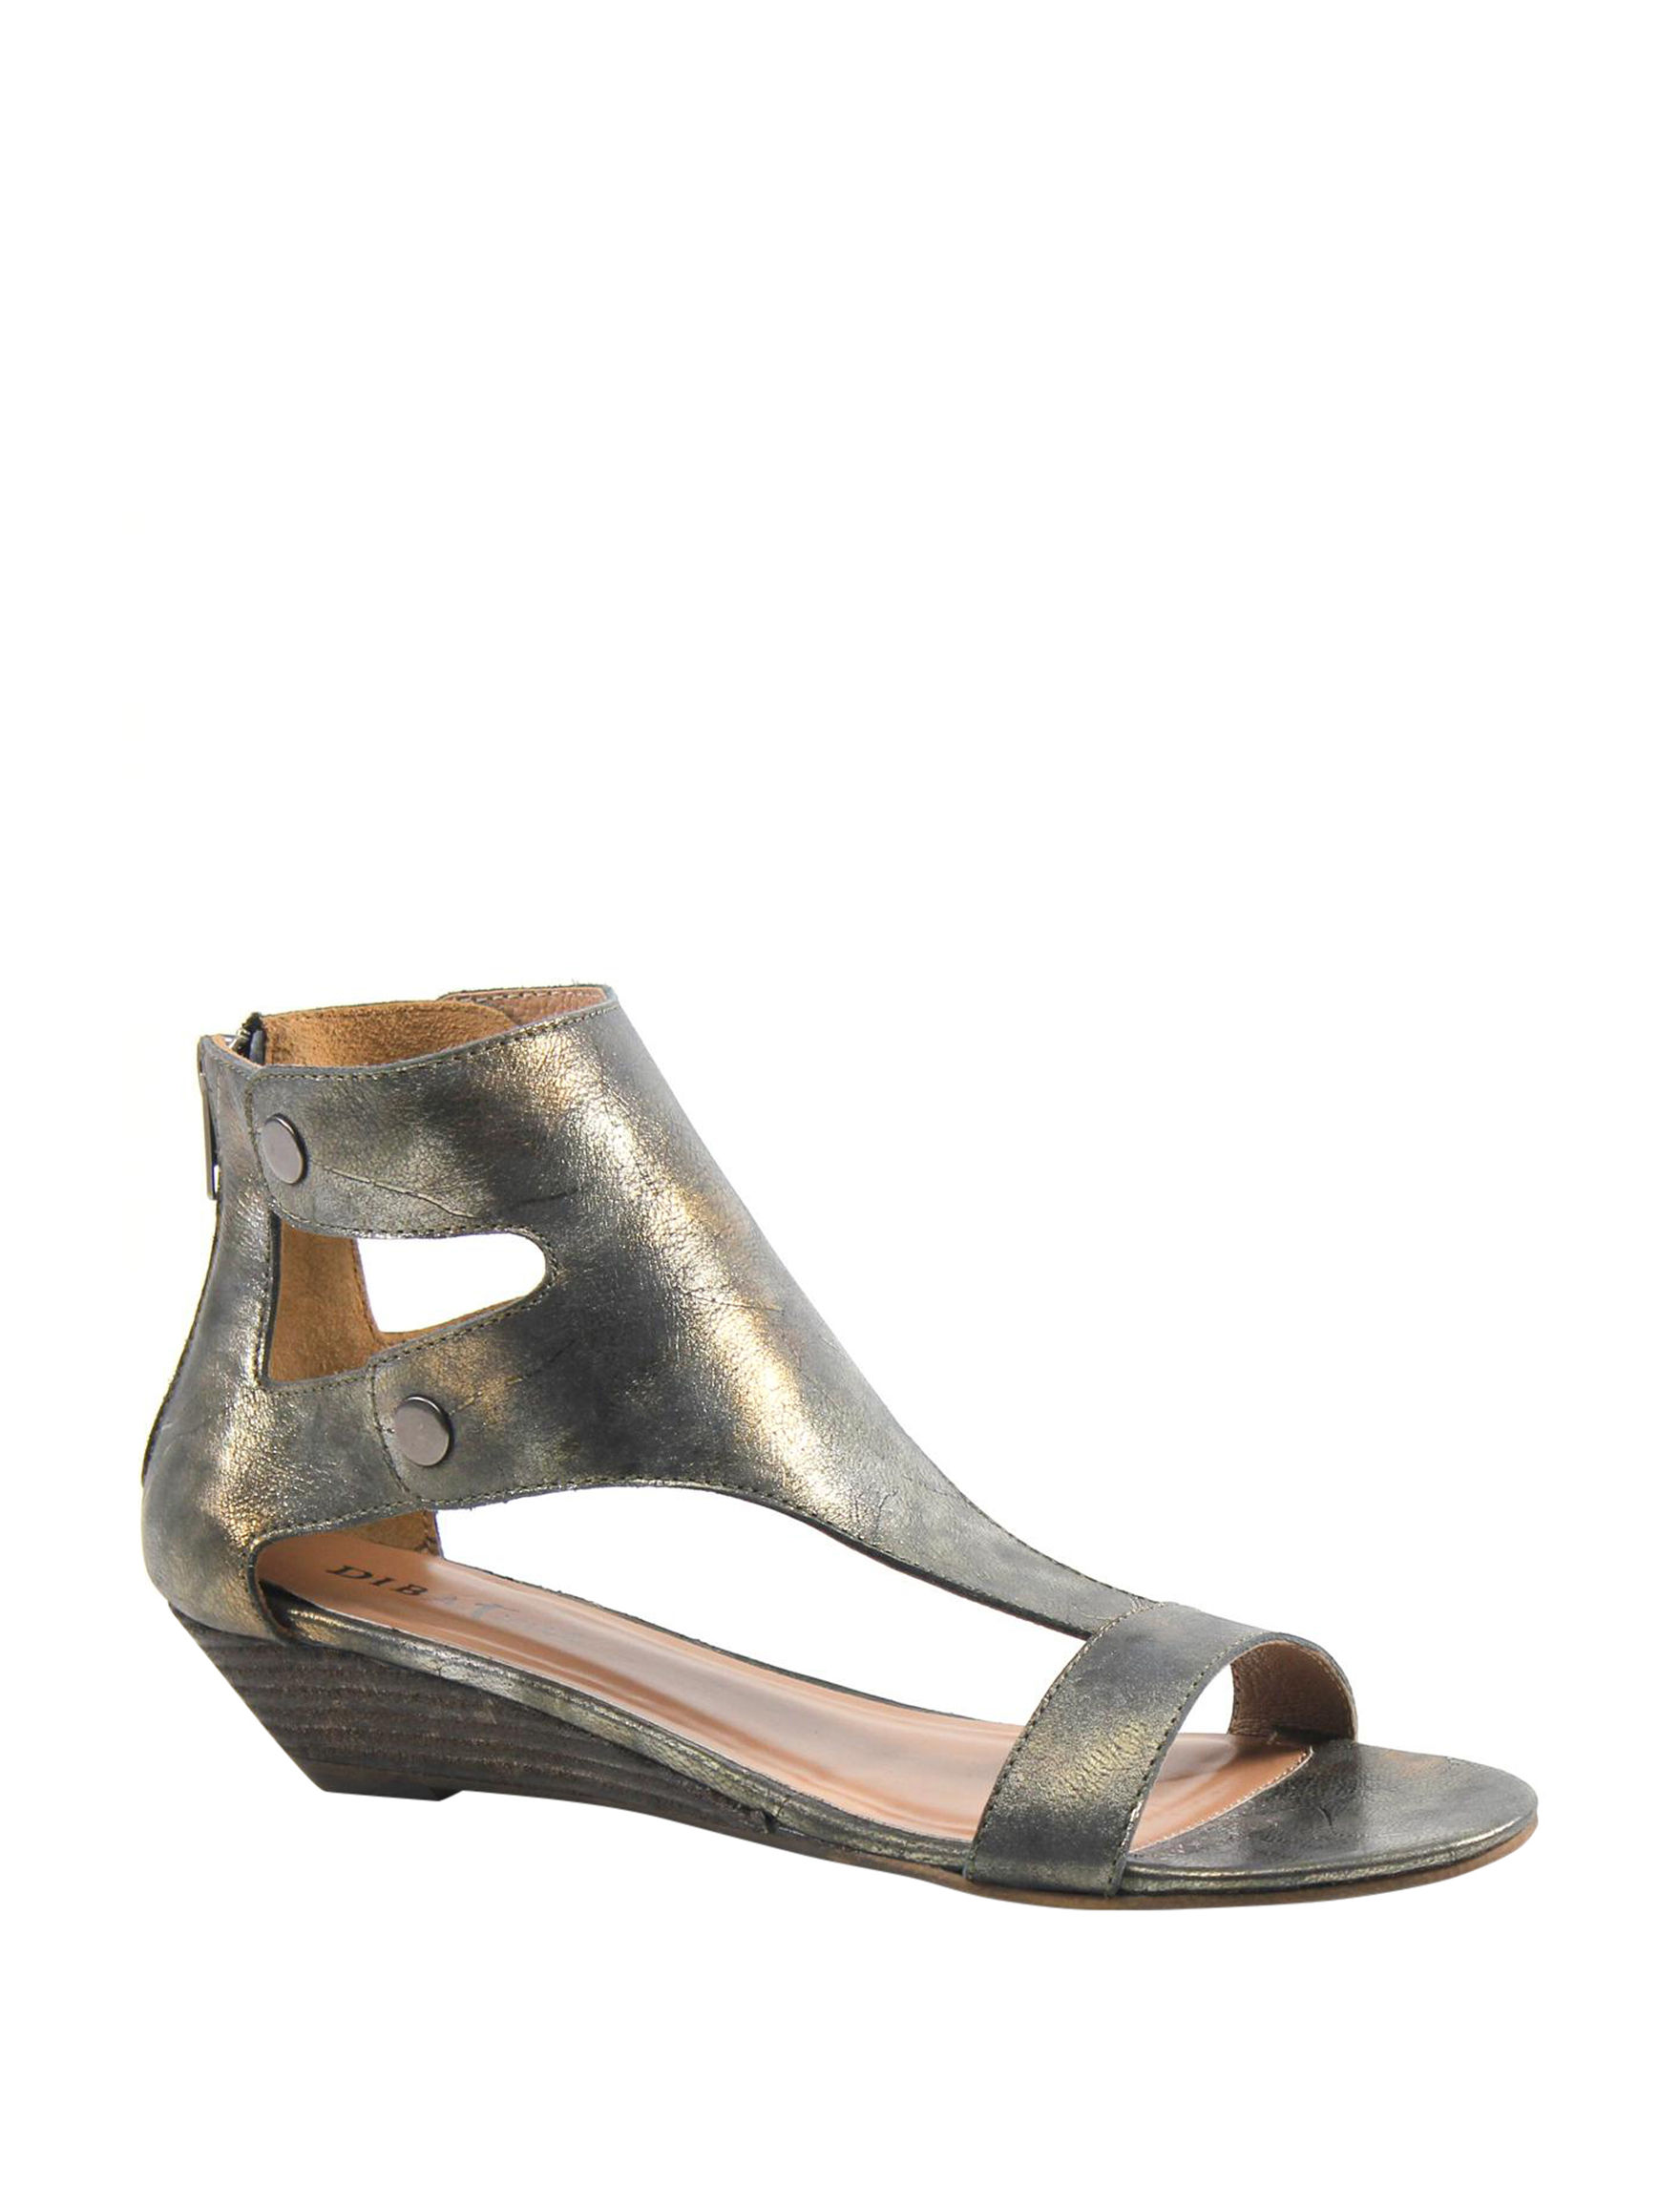 Diba True Pewter Slipper Sandals